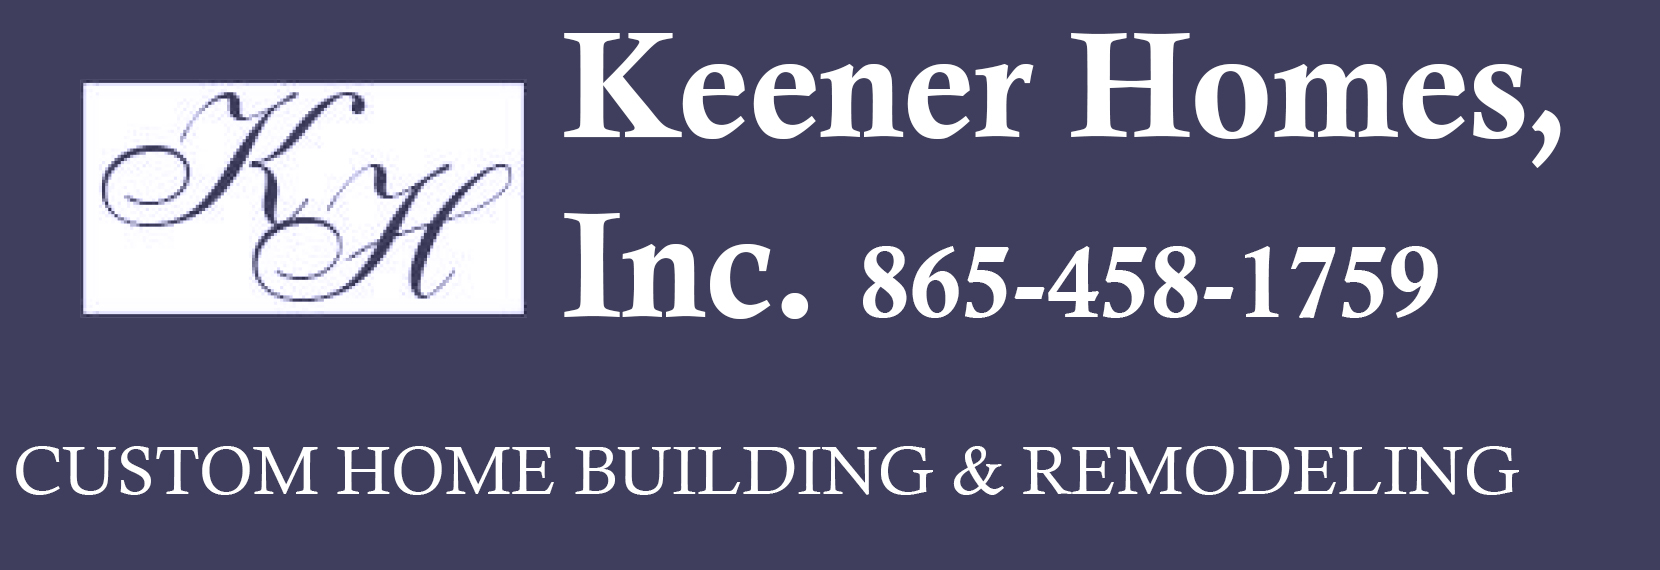 Keener Homes, Inc. Logo